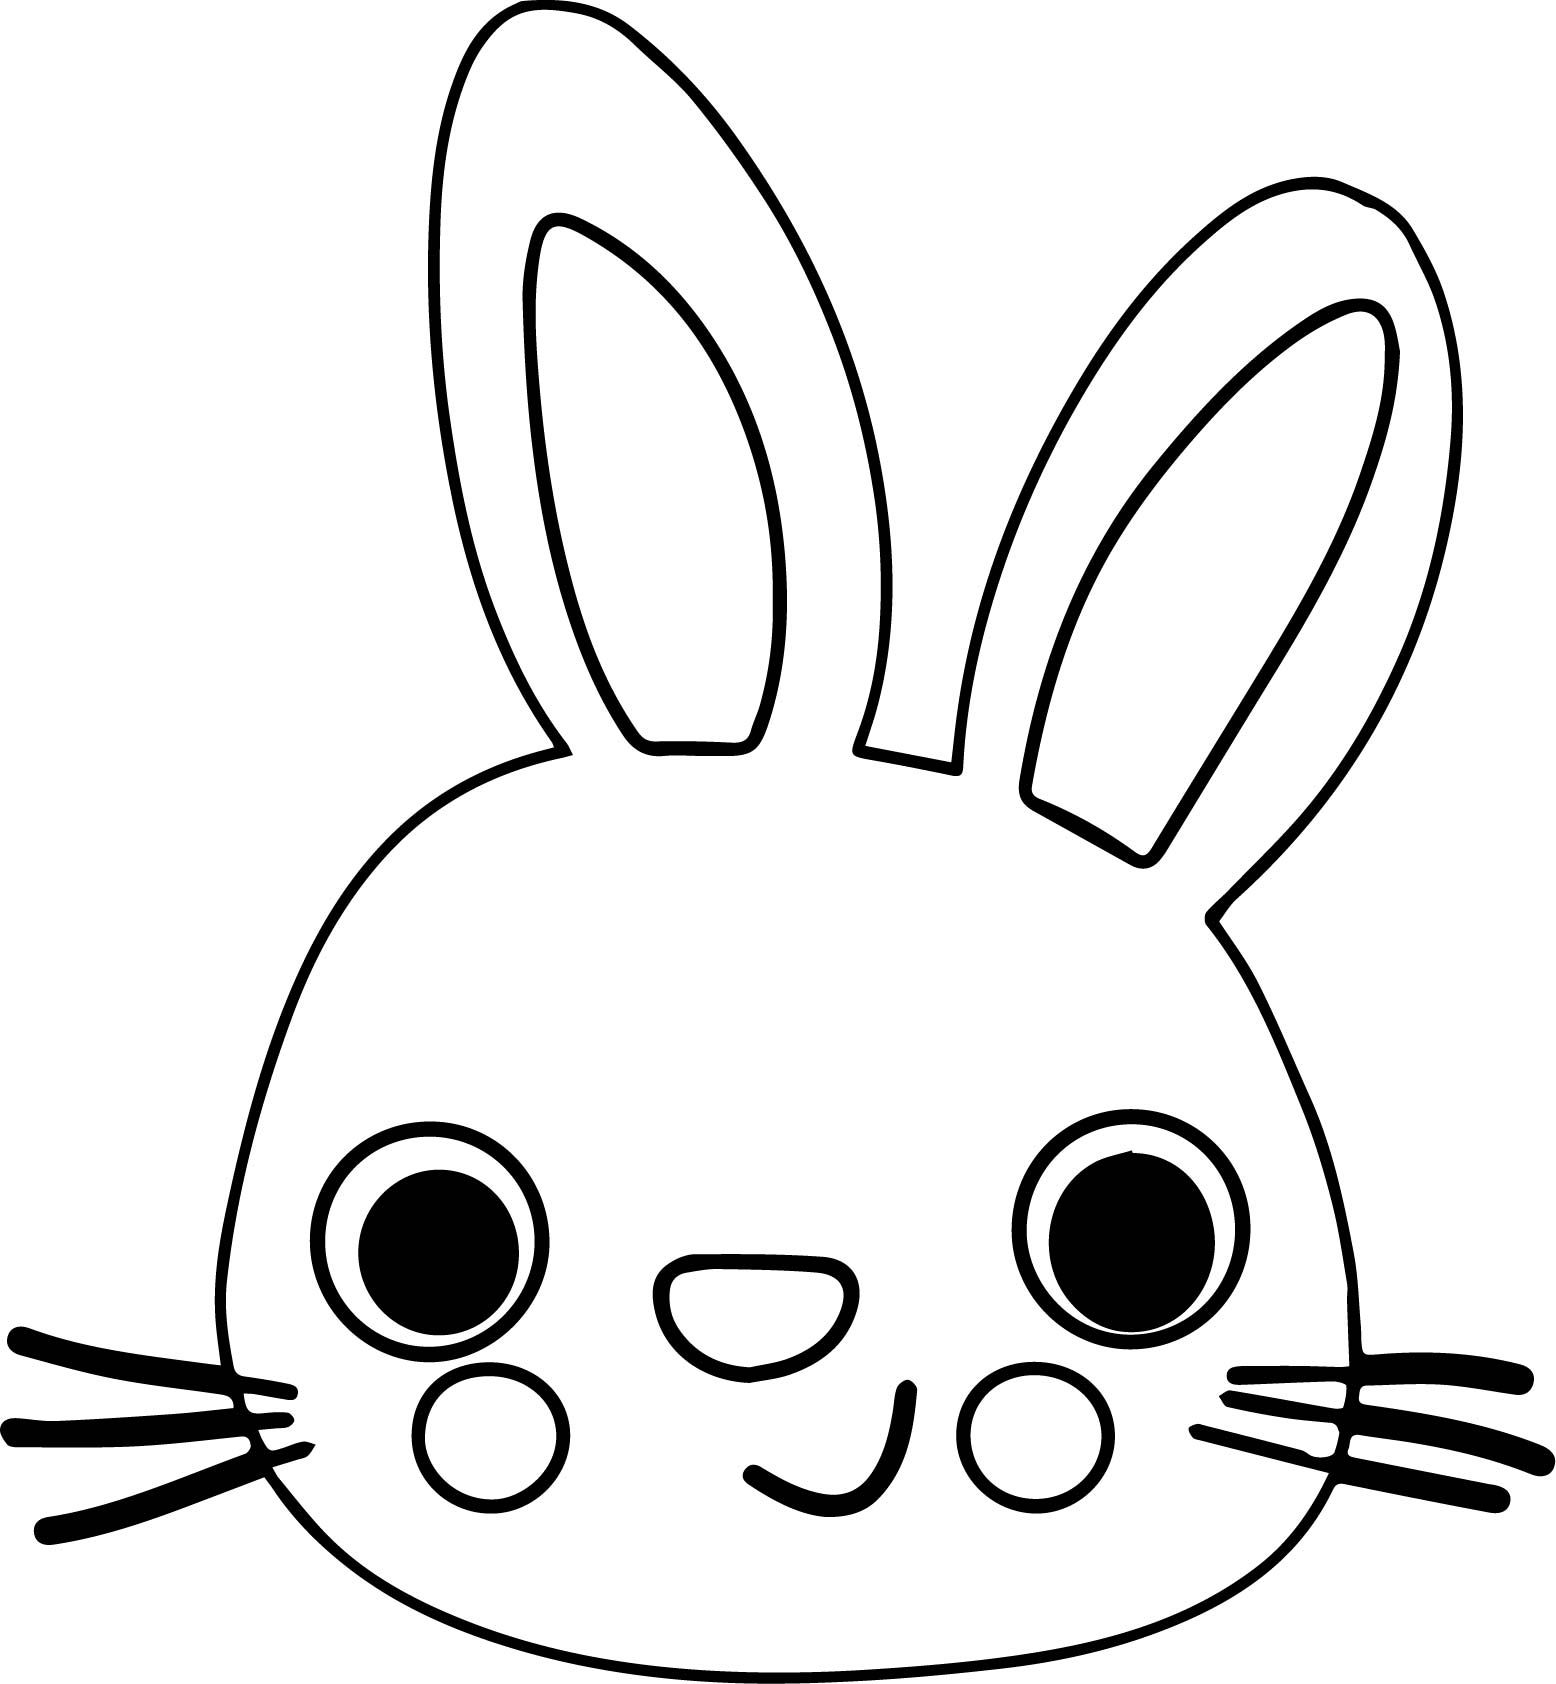 Nice Bunny Face Coloring Page Bunny Face Easter Bunny Colouring Coloring Pages